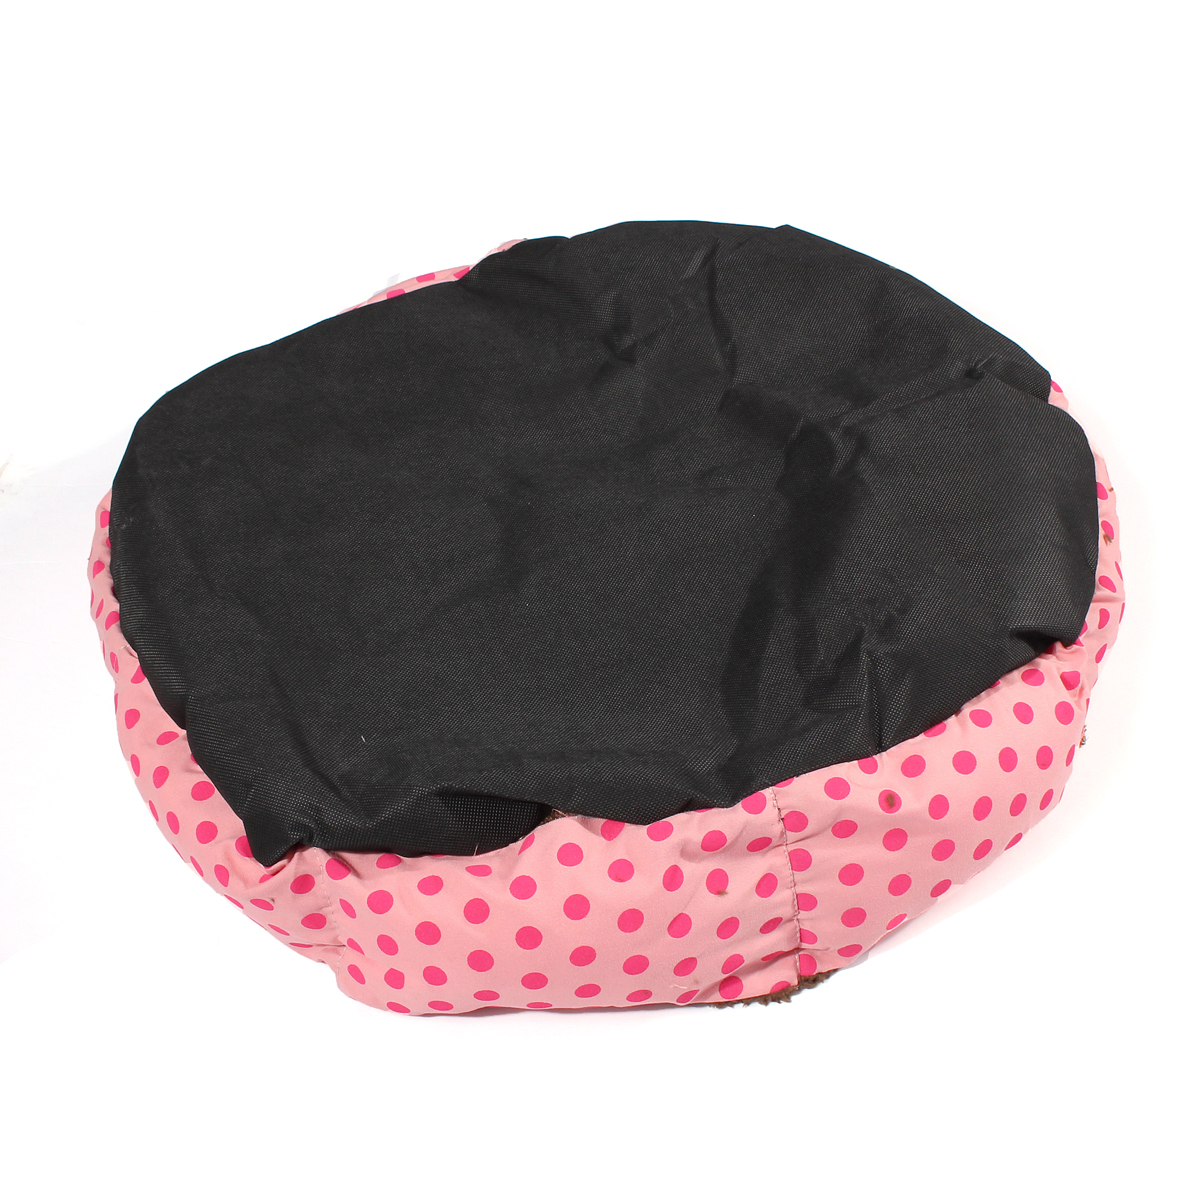 32246325213 furthermore Jellycat Slackajack Monkey Small also Black Futon Frame With Black Futon Mattress as well 361020797021 moreover 111728680710. on cat sleeping pad